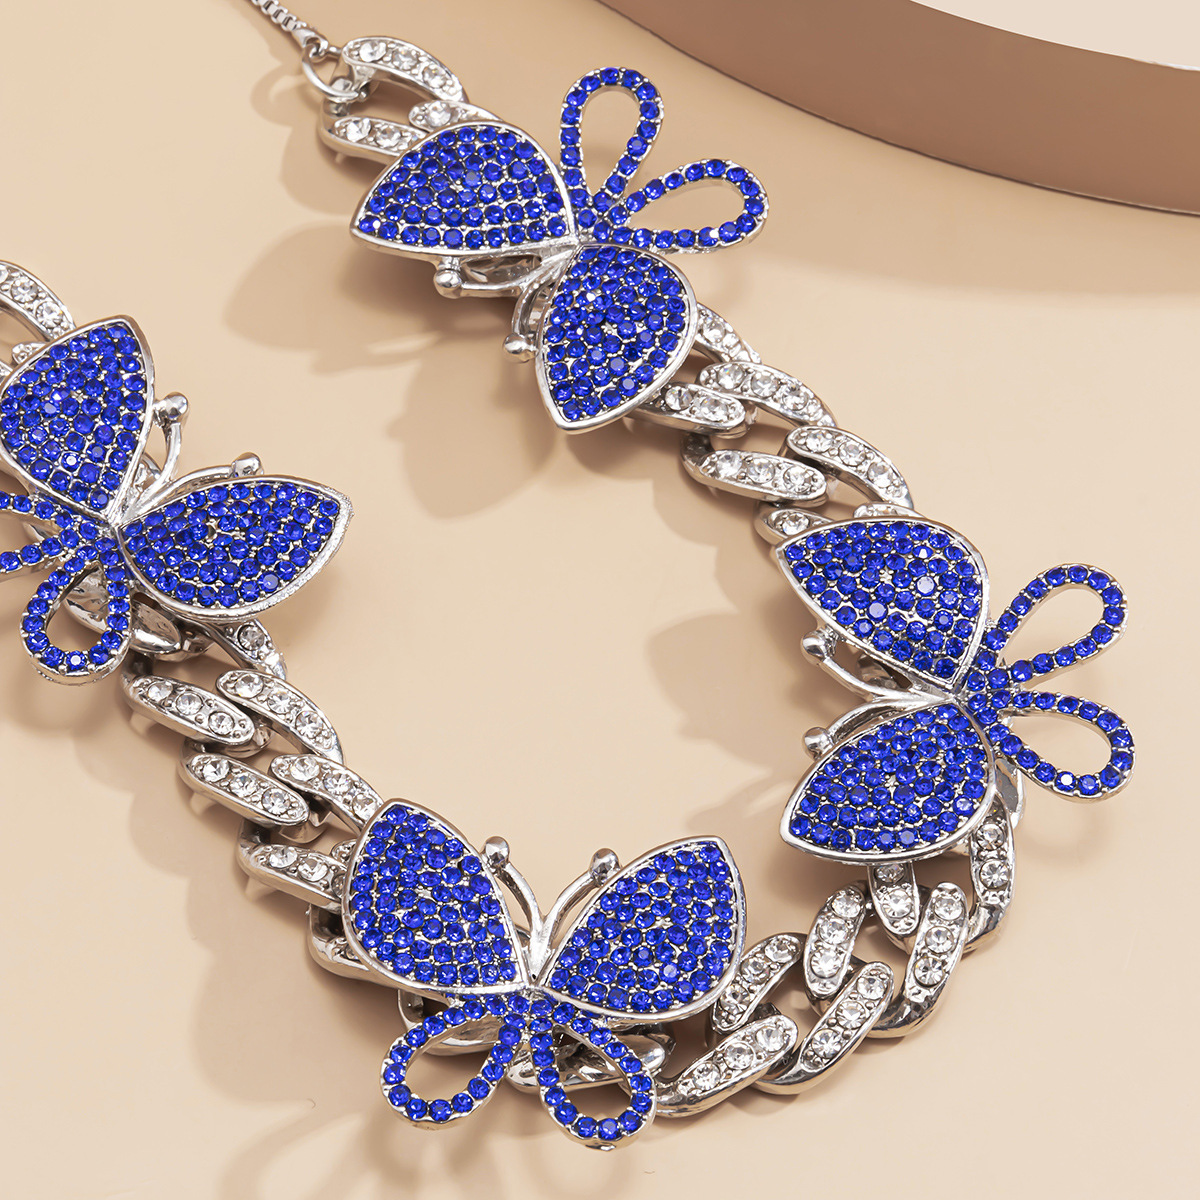 Fashion exaggerated full of Cuban butterfly necklaces retro luxury colorful necklaces for women jewelry accessories